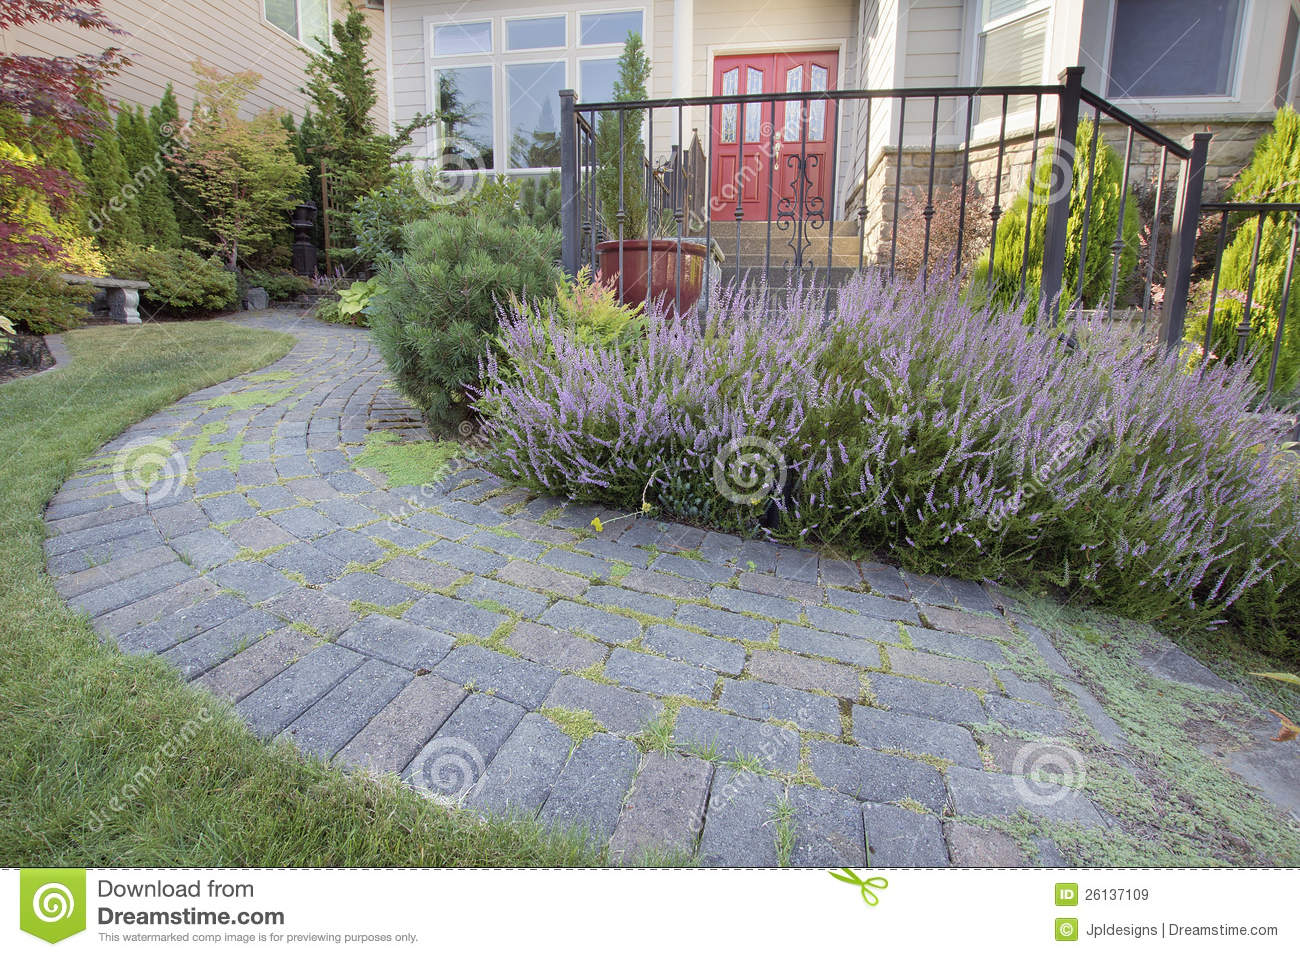 Frontyard Garden Paver Walkway With Heather Flower Royalty Free Stock Images Image 26137109